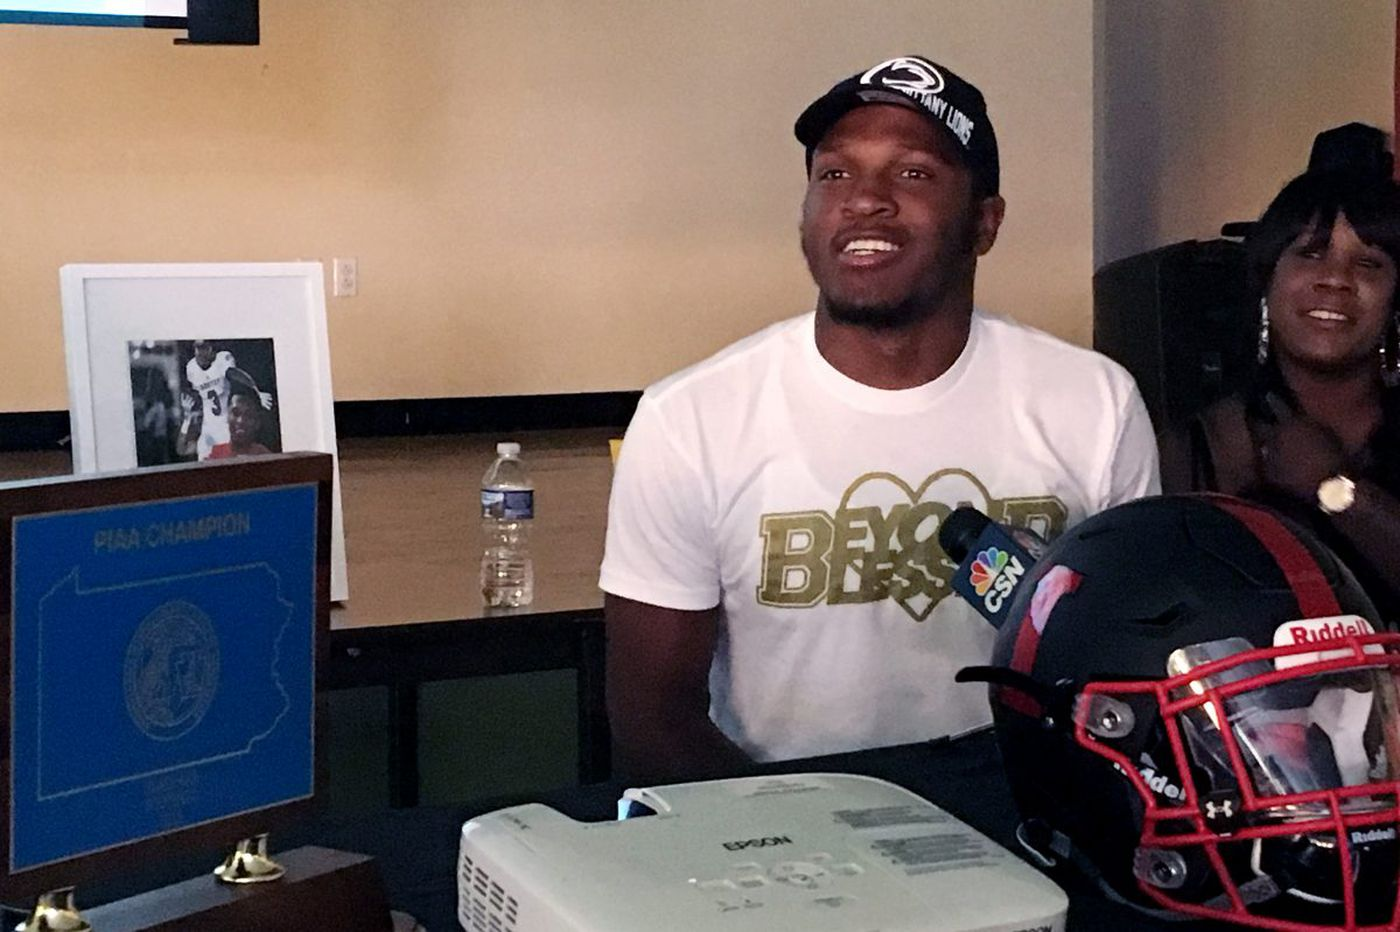 Former Imhotep football star Isheem Young to admit to robbery in juvenile court